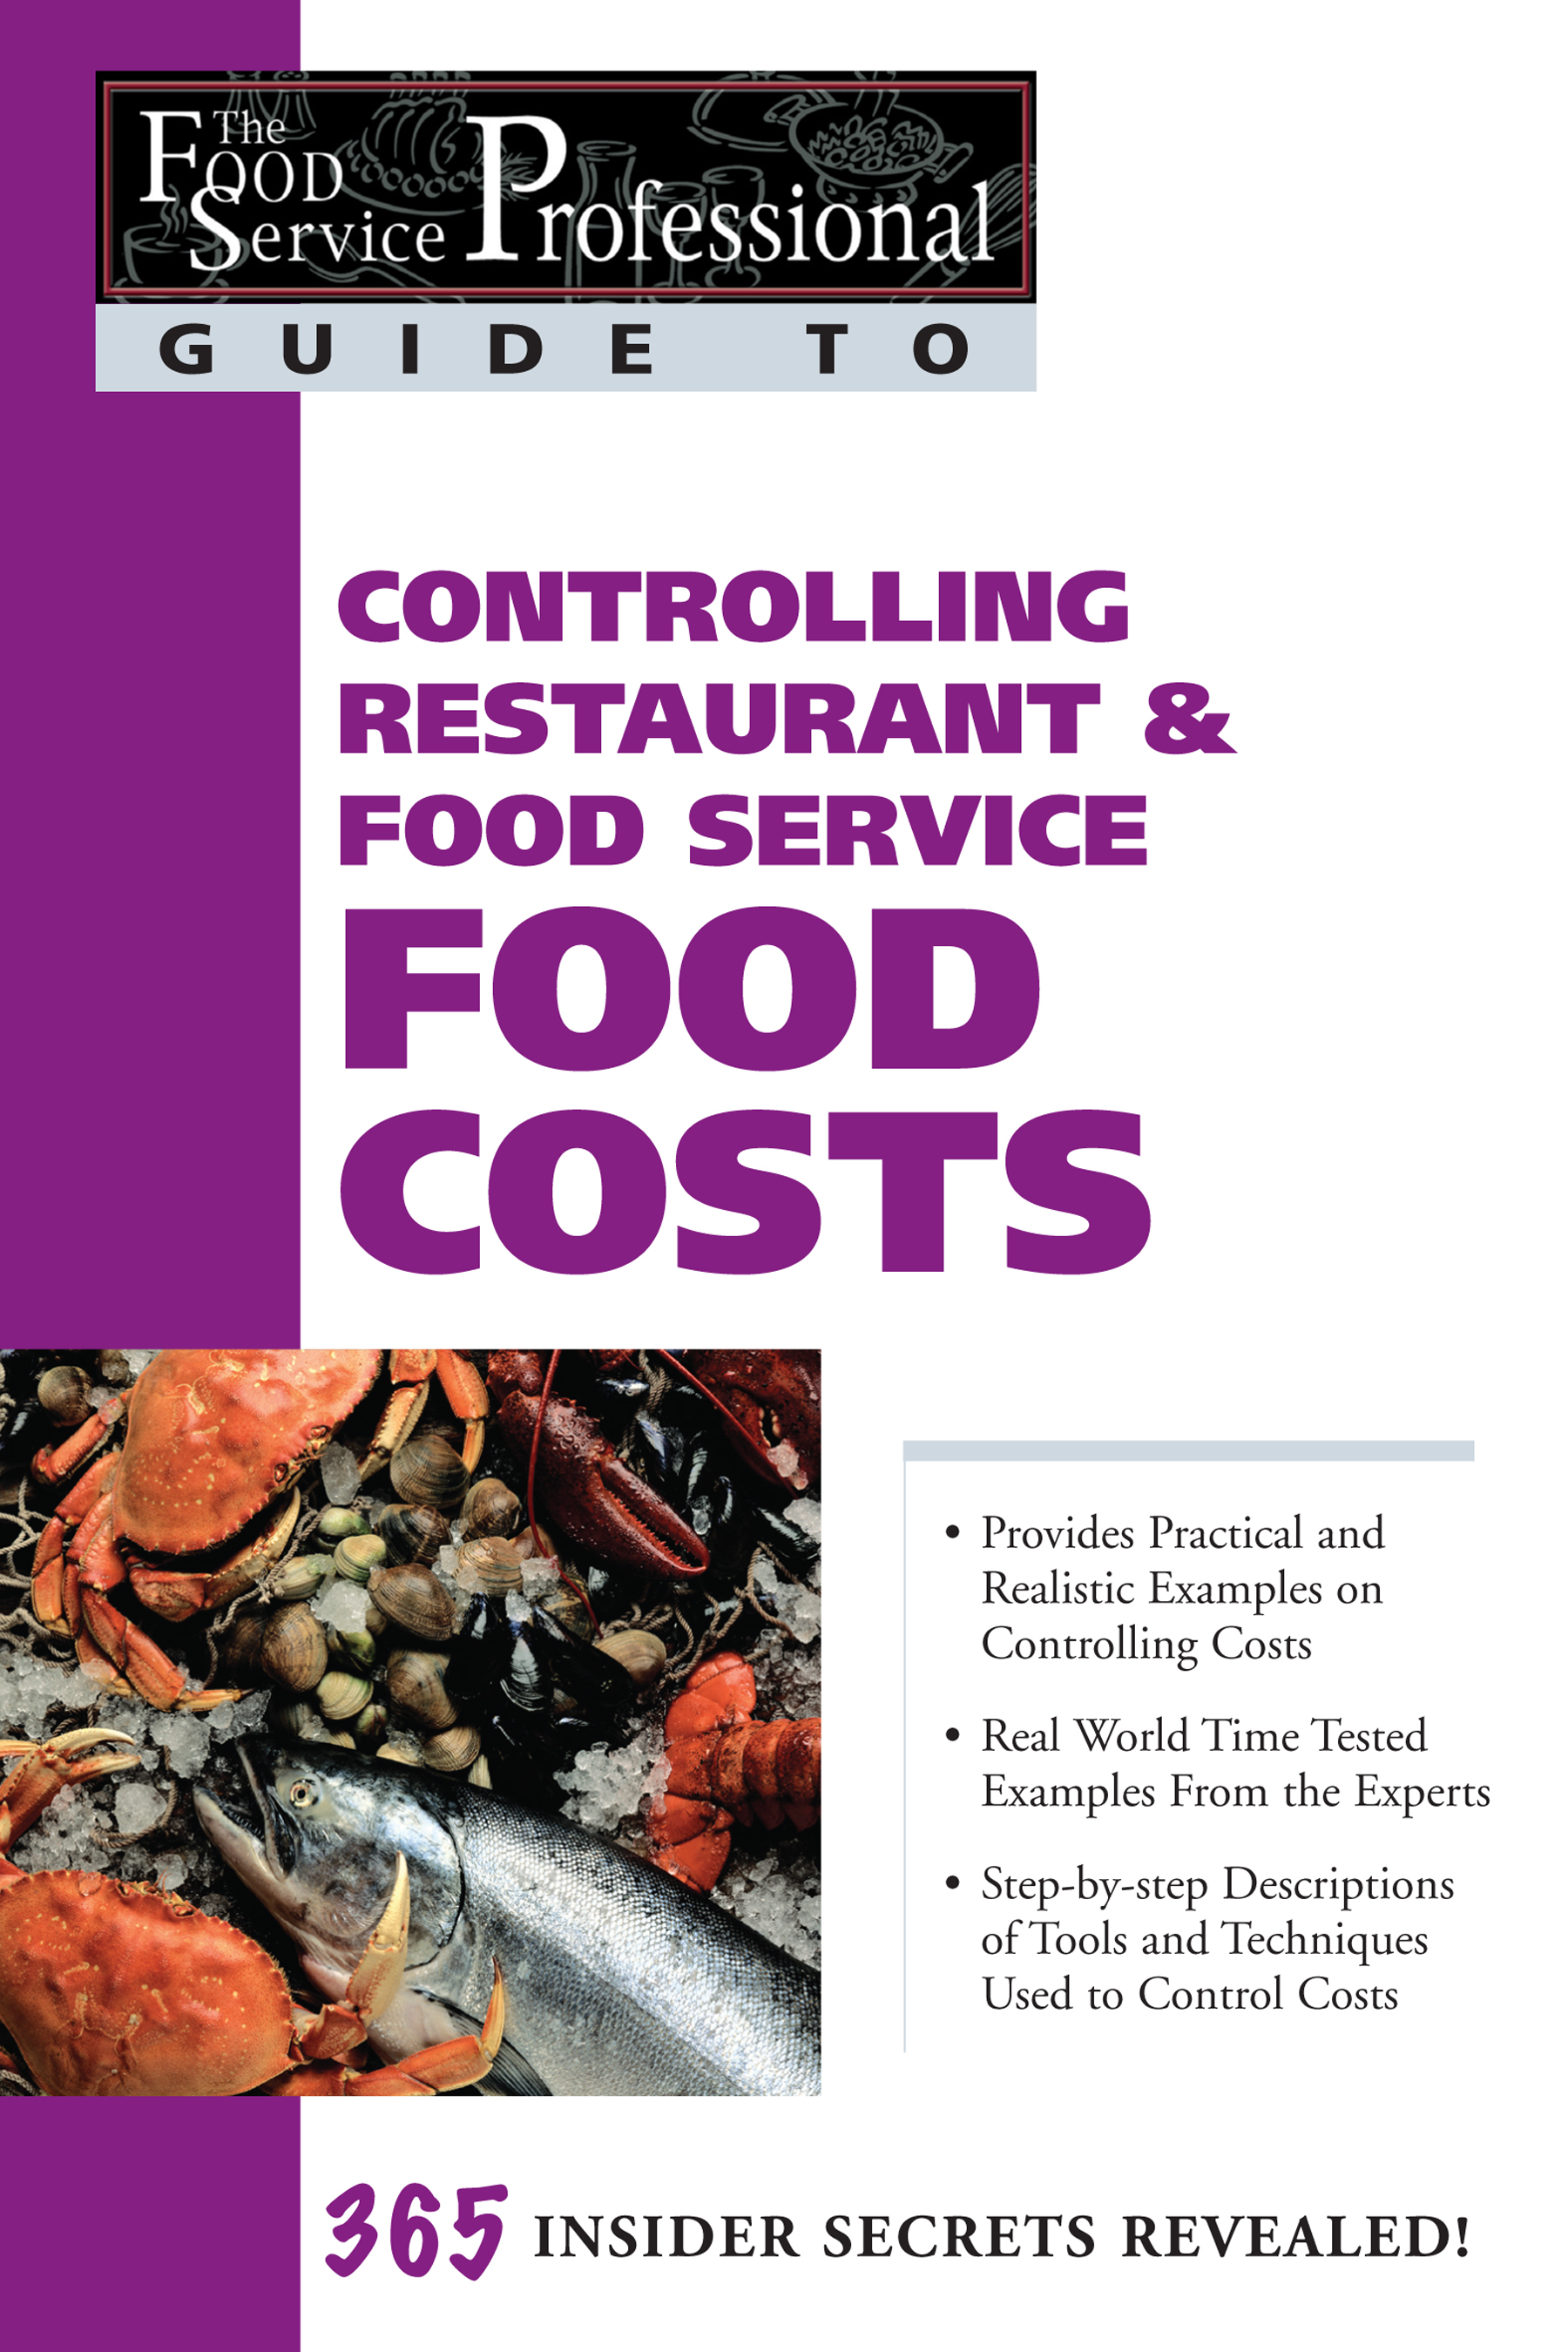 Download Ebook The Food Service Professional Guide to Controlling Restaurant & Food Service Food Costs by Douglas R Brown Pdf